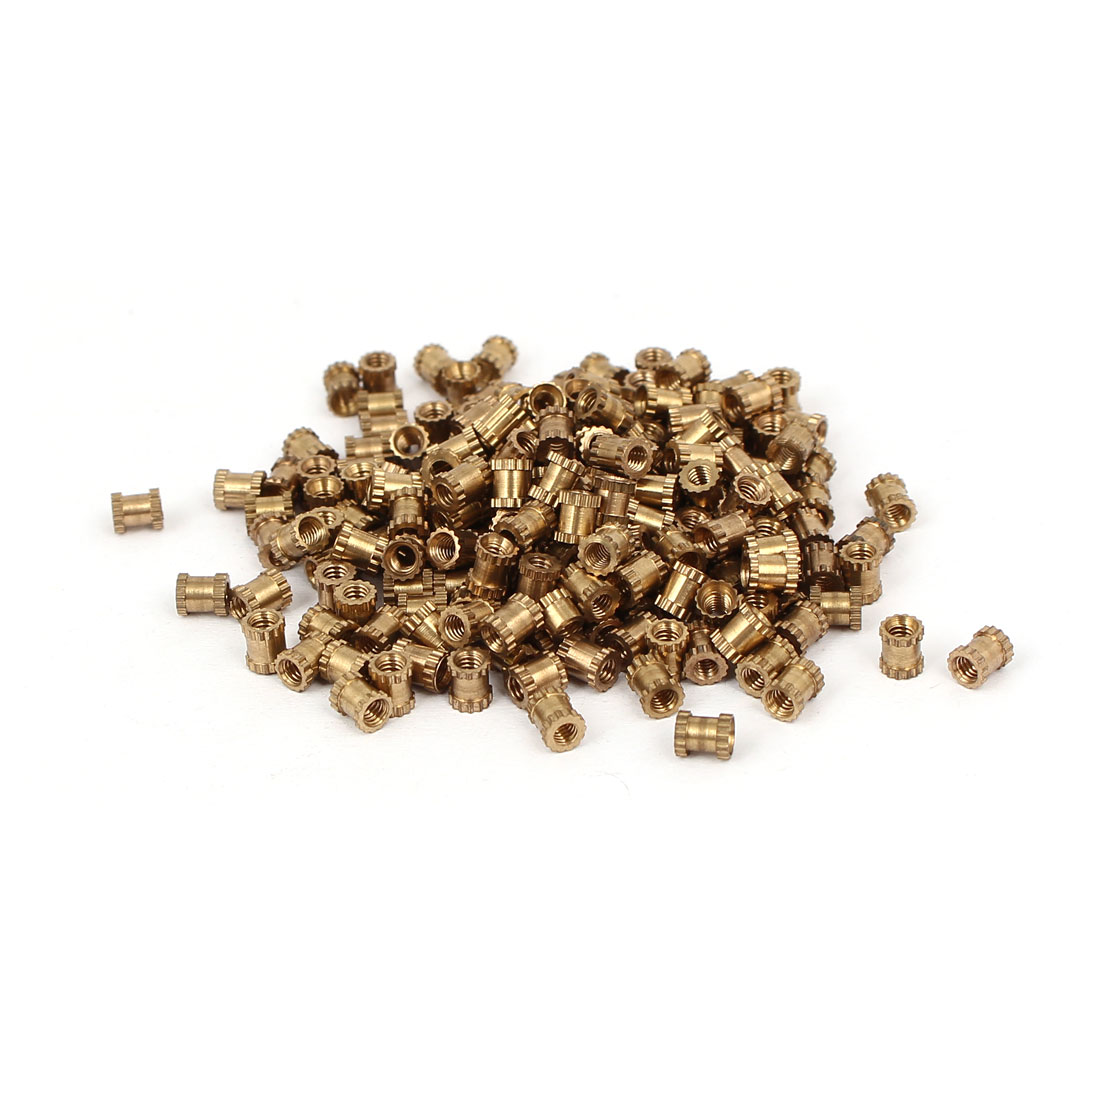 M2 x 4mm 3.2mm OD Brass Threaded Insert Embedded Knurled Thumb Nut 200PCS